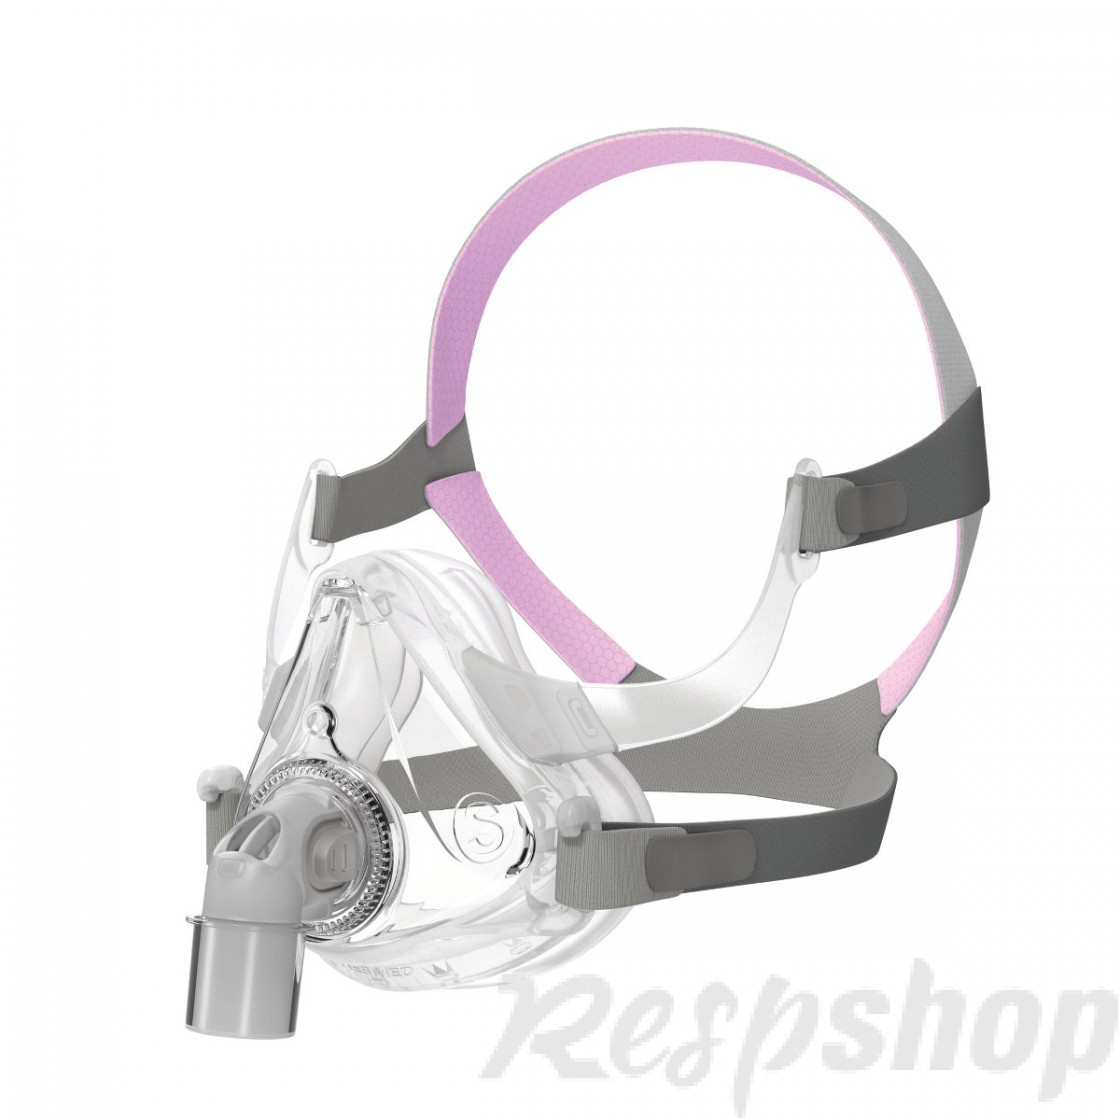 ResMed AirFit F10 for Her CPAP Full Face Mask with Headgear